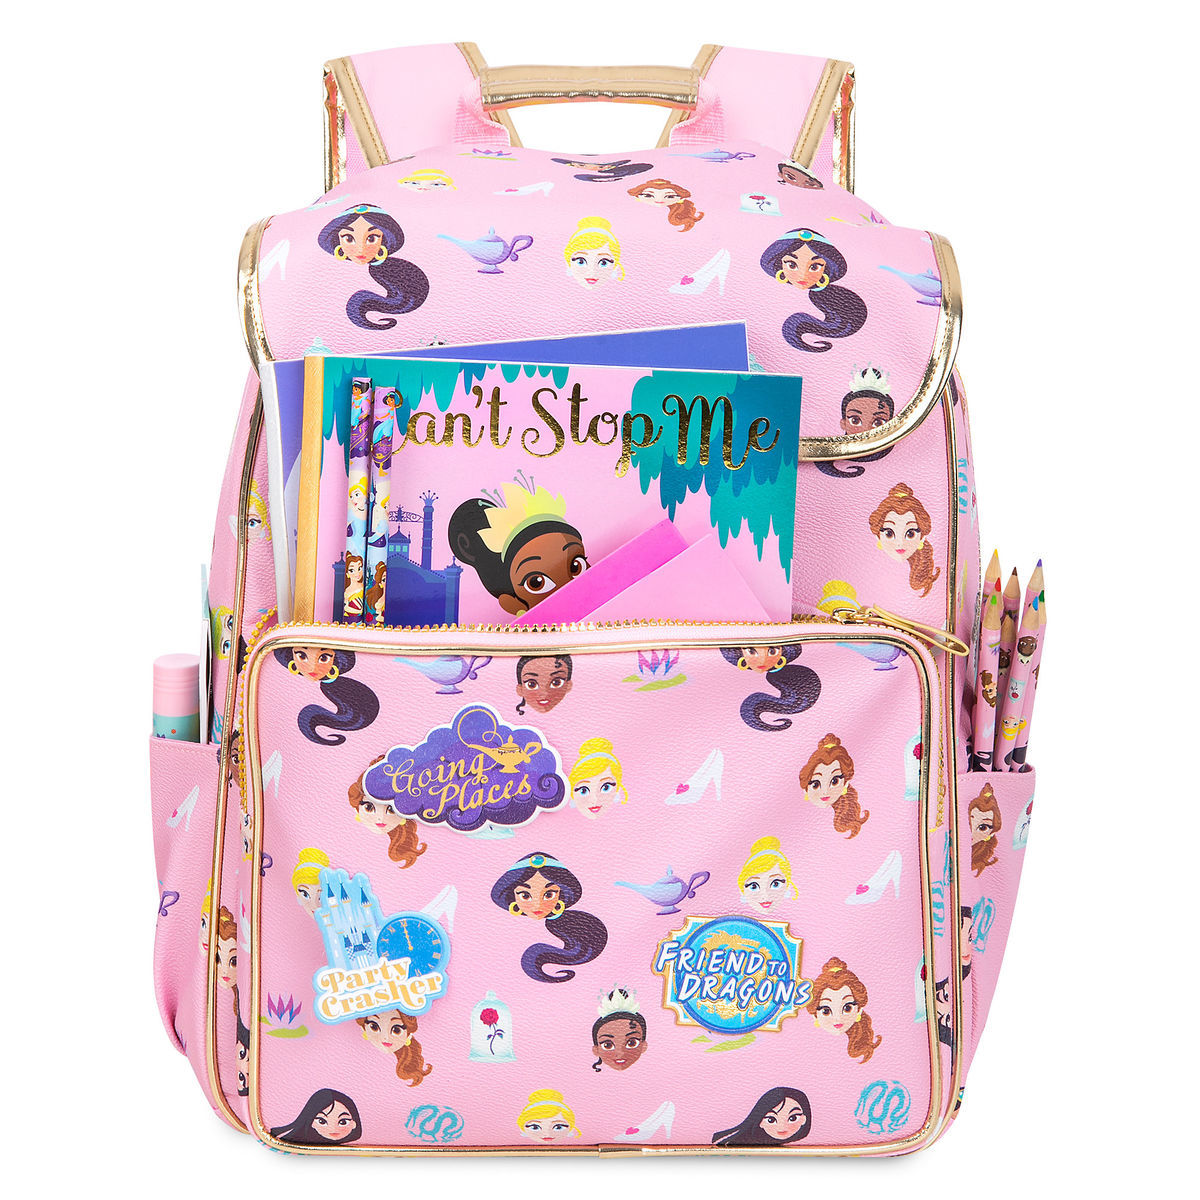 a7c393172316 Product Image of Disney Princess Backpack - Personalizable   4